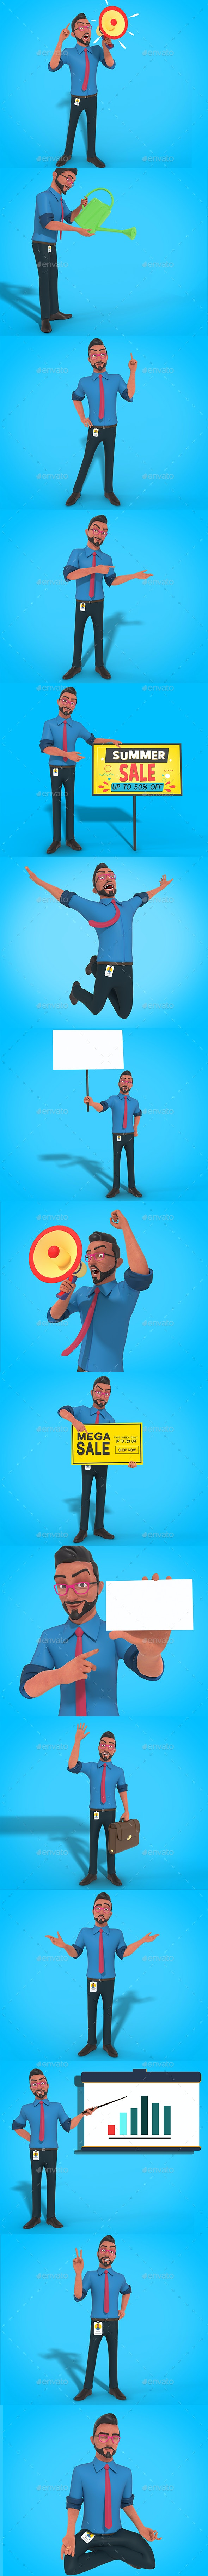 Mr Bob 3D Character Business Mascot Actions Fully Editable Psd - Characters 3D Renders